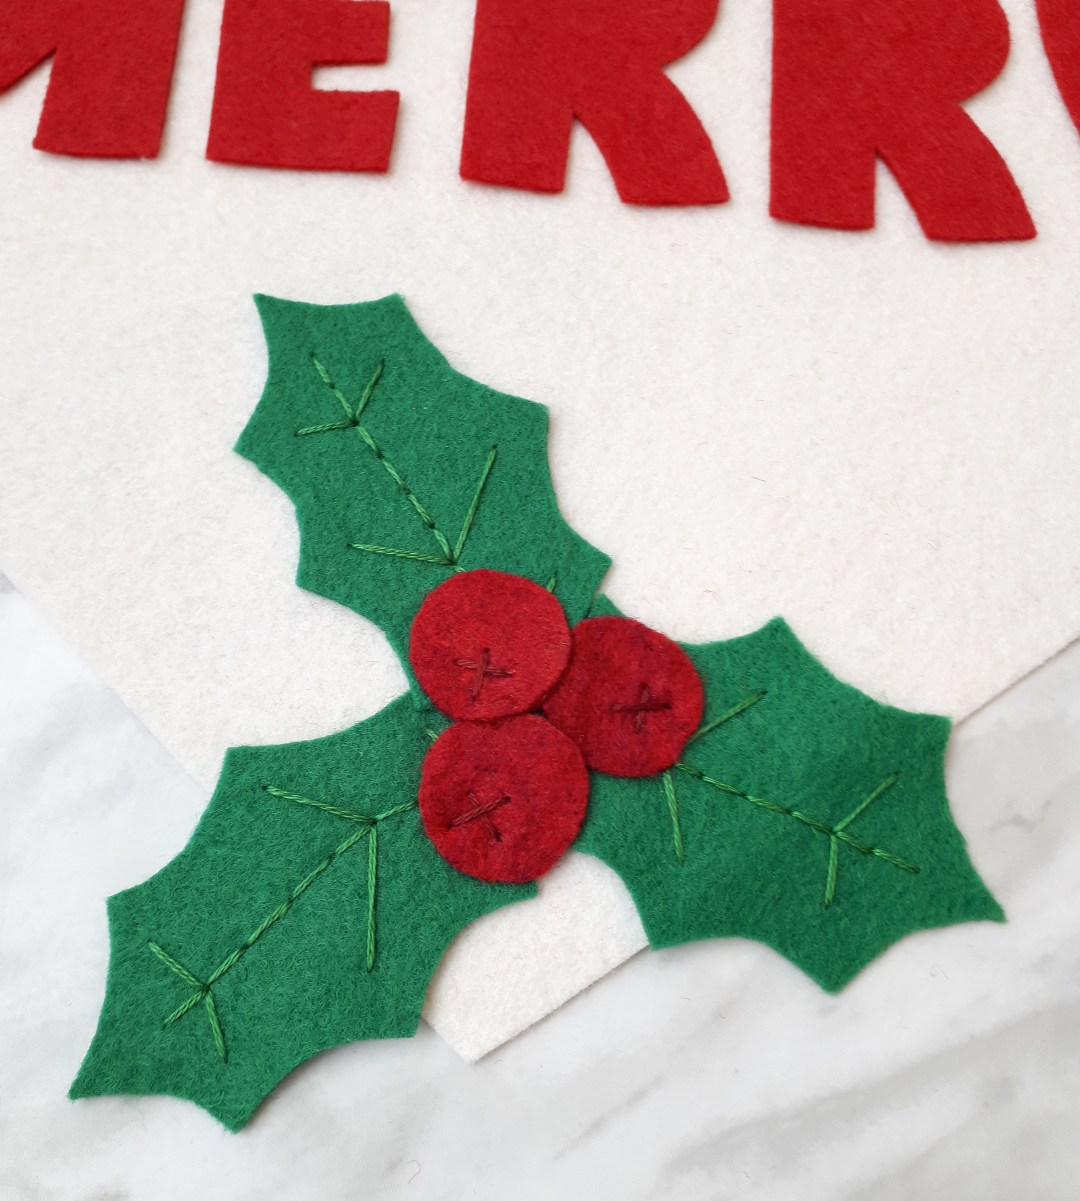 Hand sew the holly leaves and berries to give them more definition.